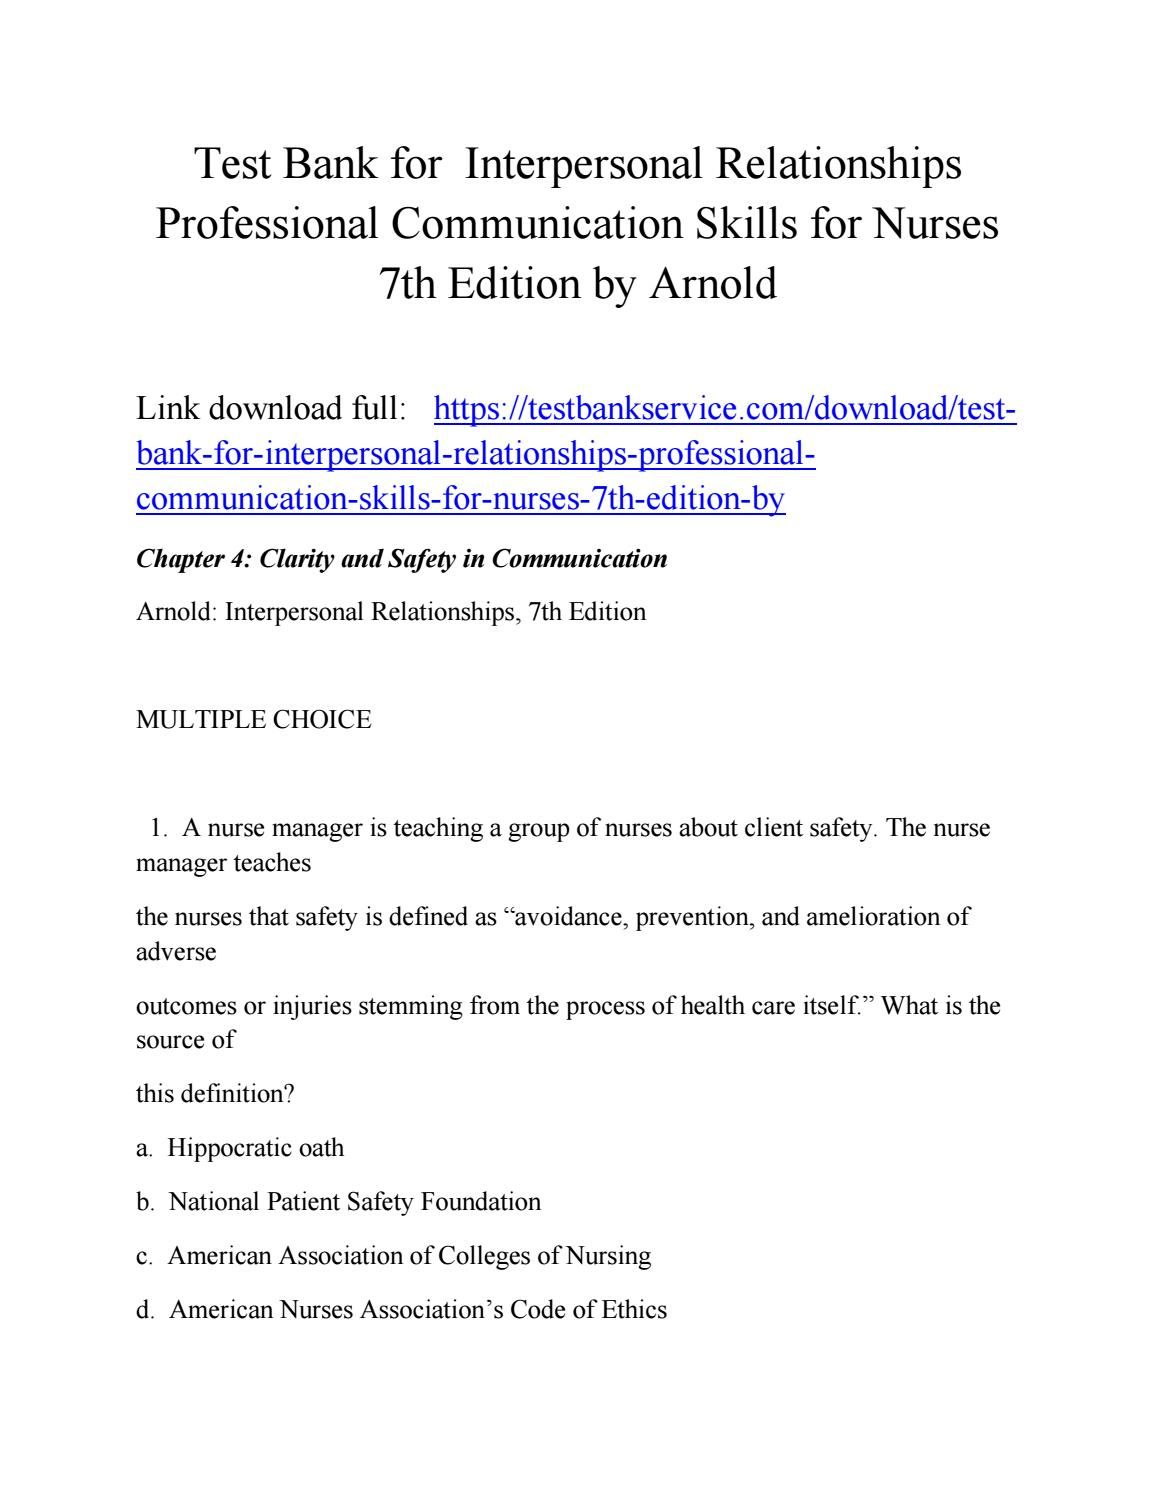 Test bank for interpersonal relationships professional communication skills  for nurses 7th edition b